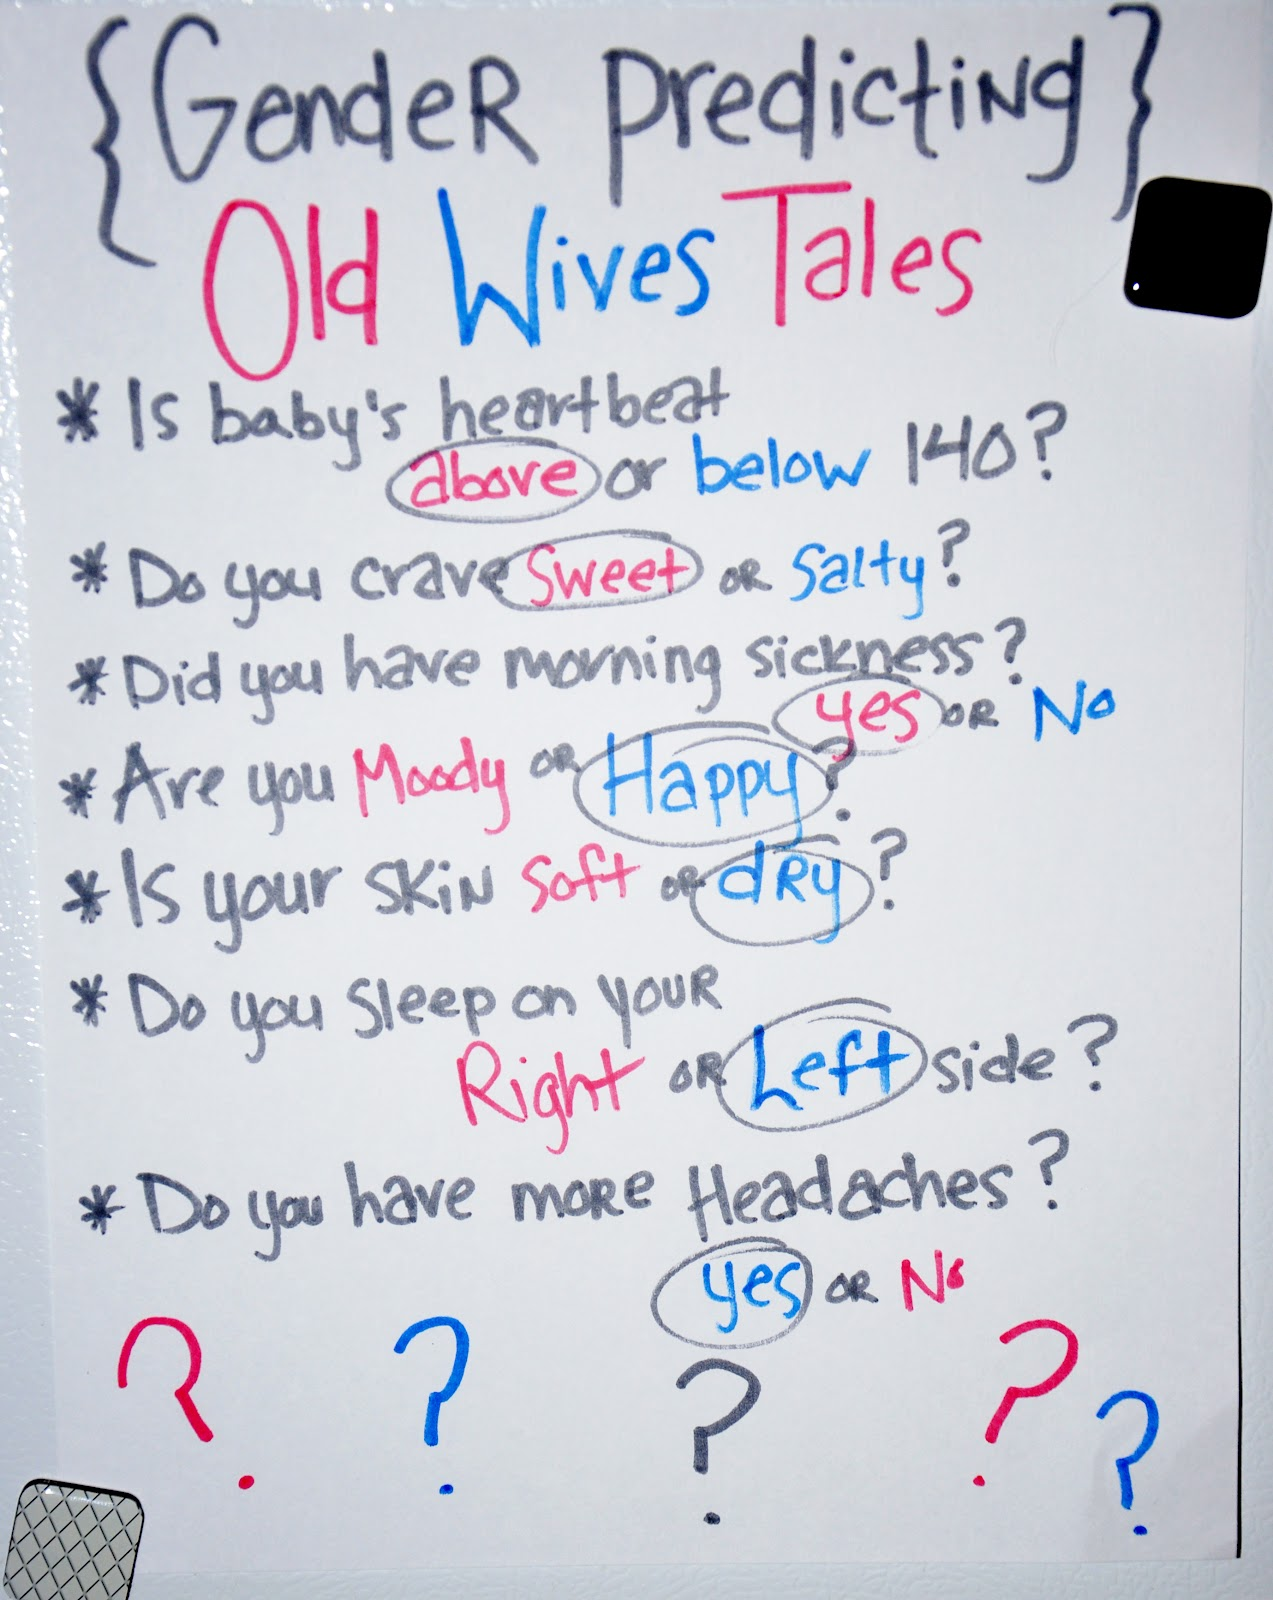 Baby sex wives tales — 2